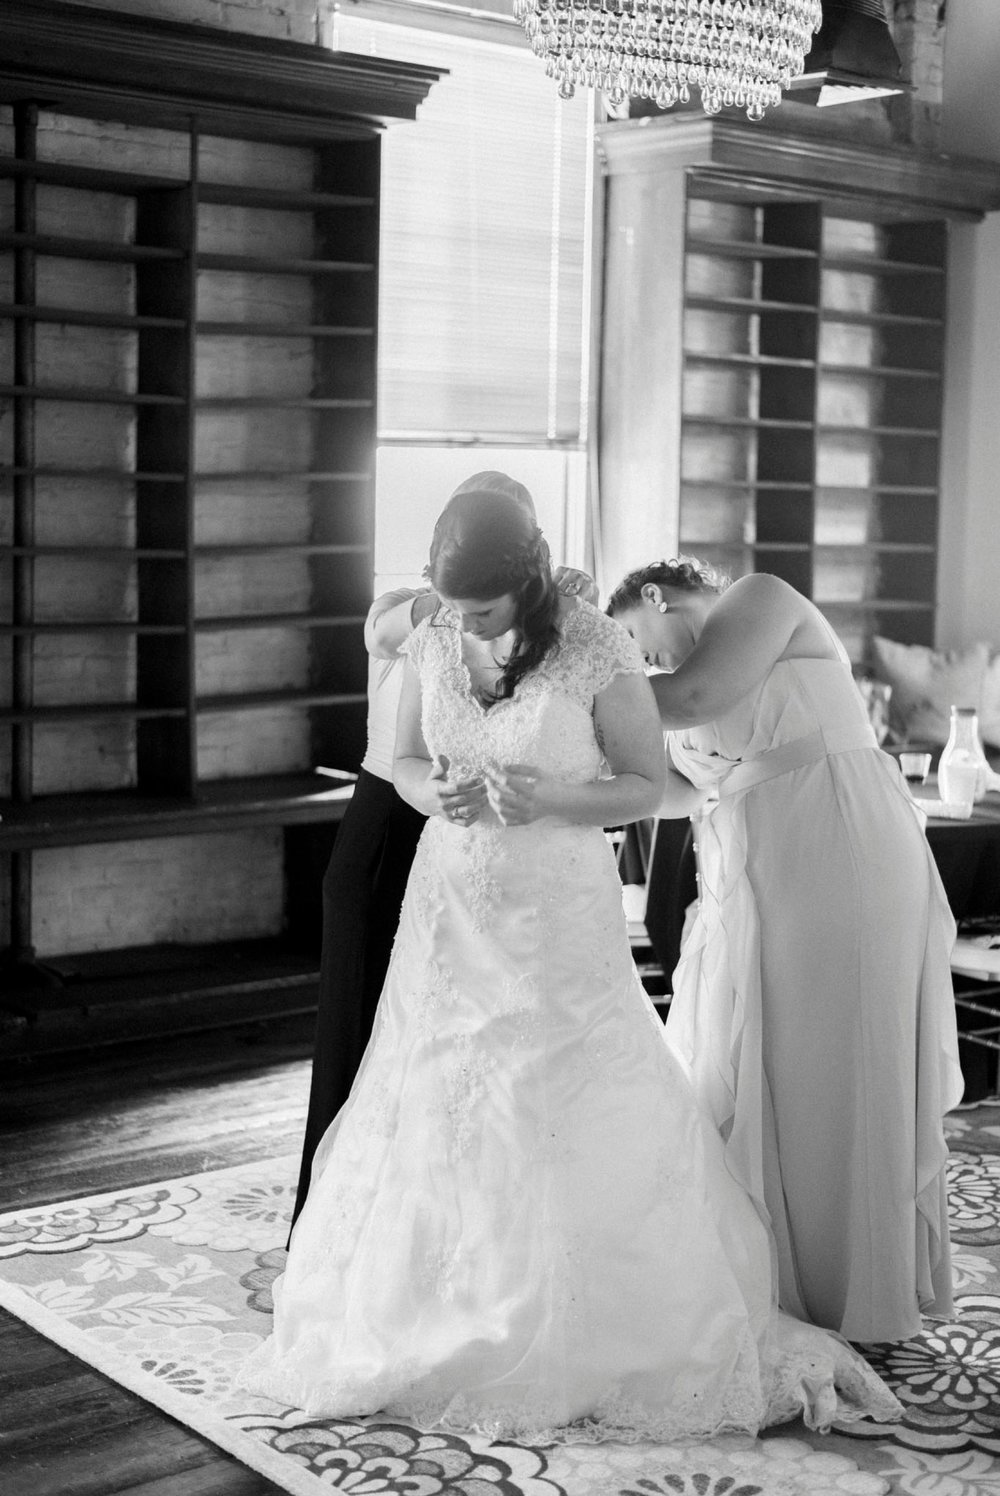 Trescaon8th_DowntownLynchburg_Virginiaweddingphotographer 7.jpg